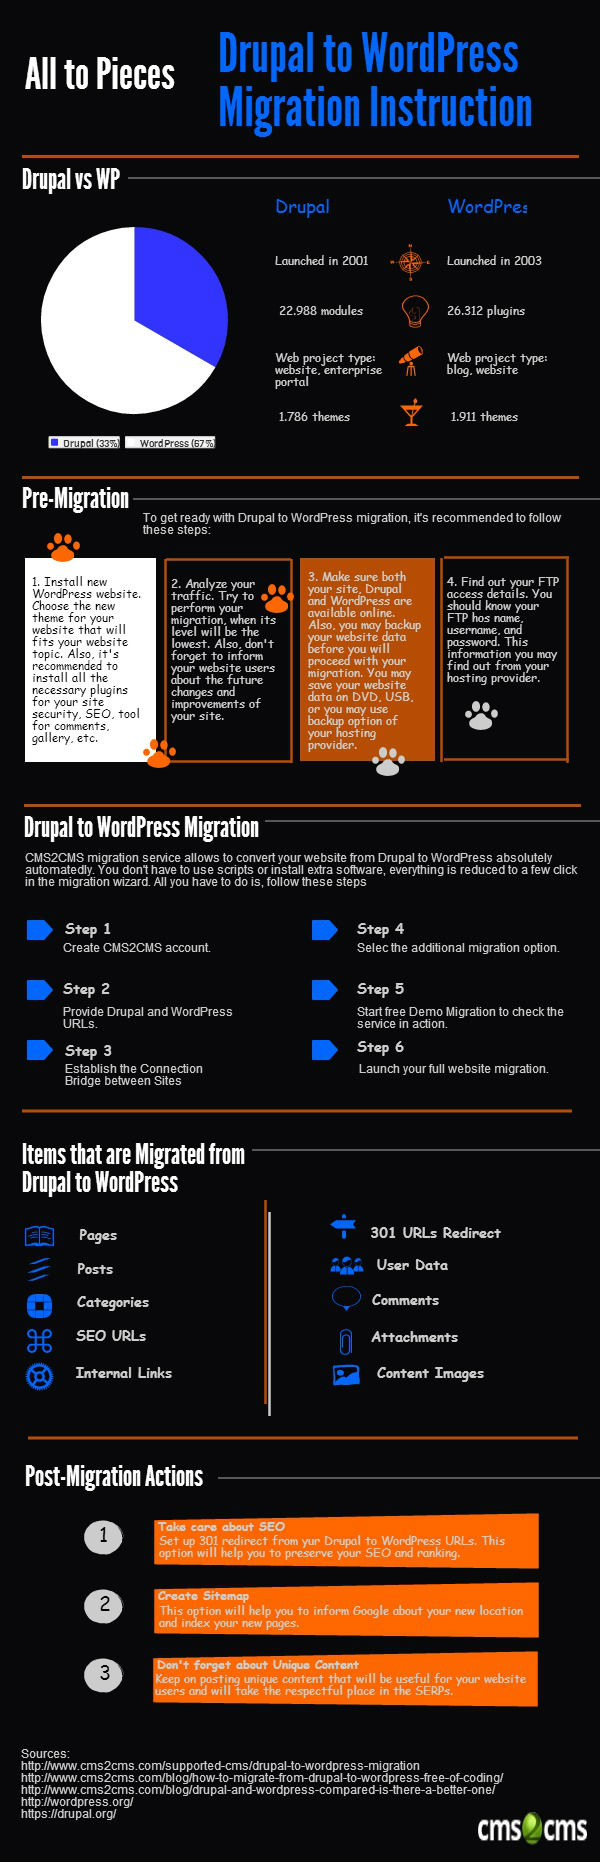 Drupal vs WordPress Migration